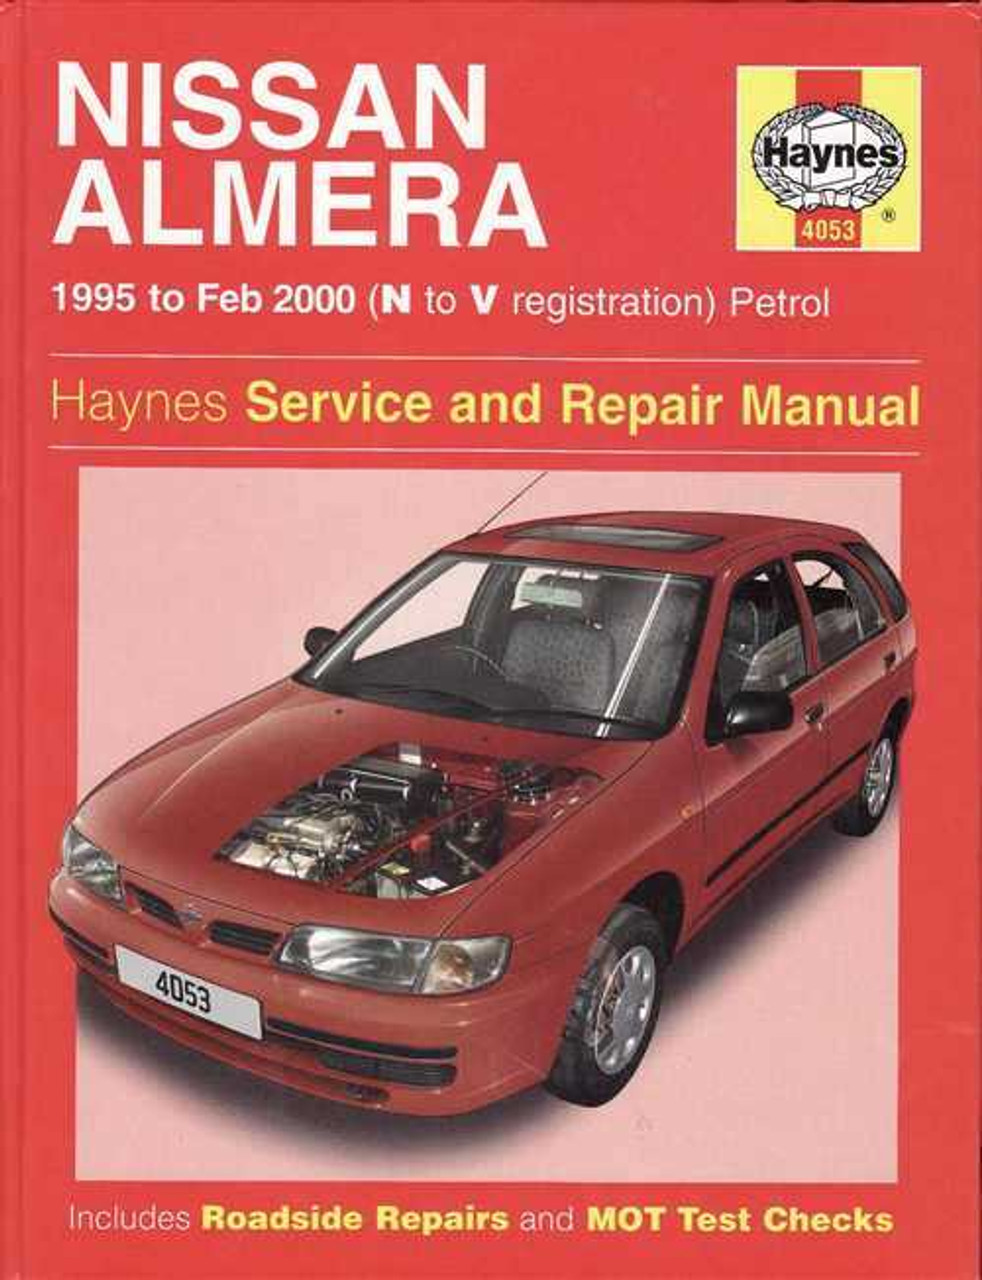 nissan almera pulsar n15 1995 2000 workshop manual rh automotobookshop com au nissan almera n15 service and repair manual nissan almera n15 service and repair manual